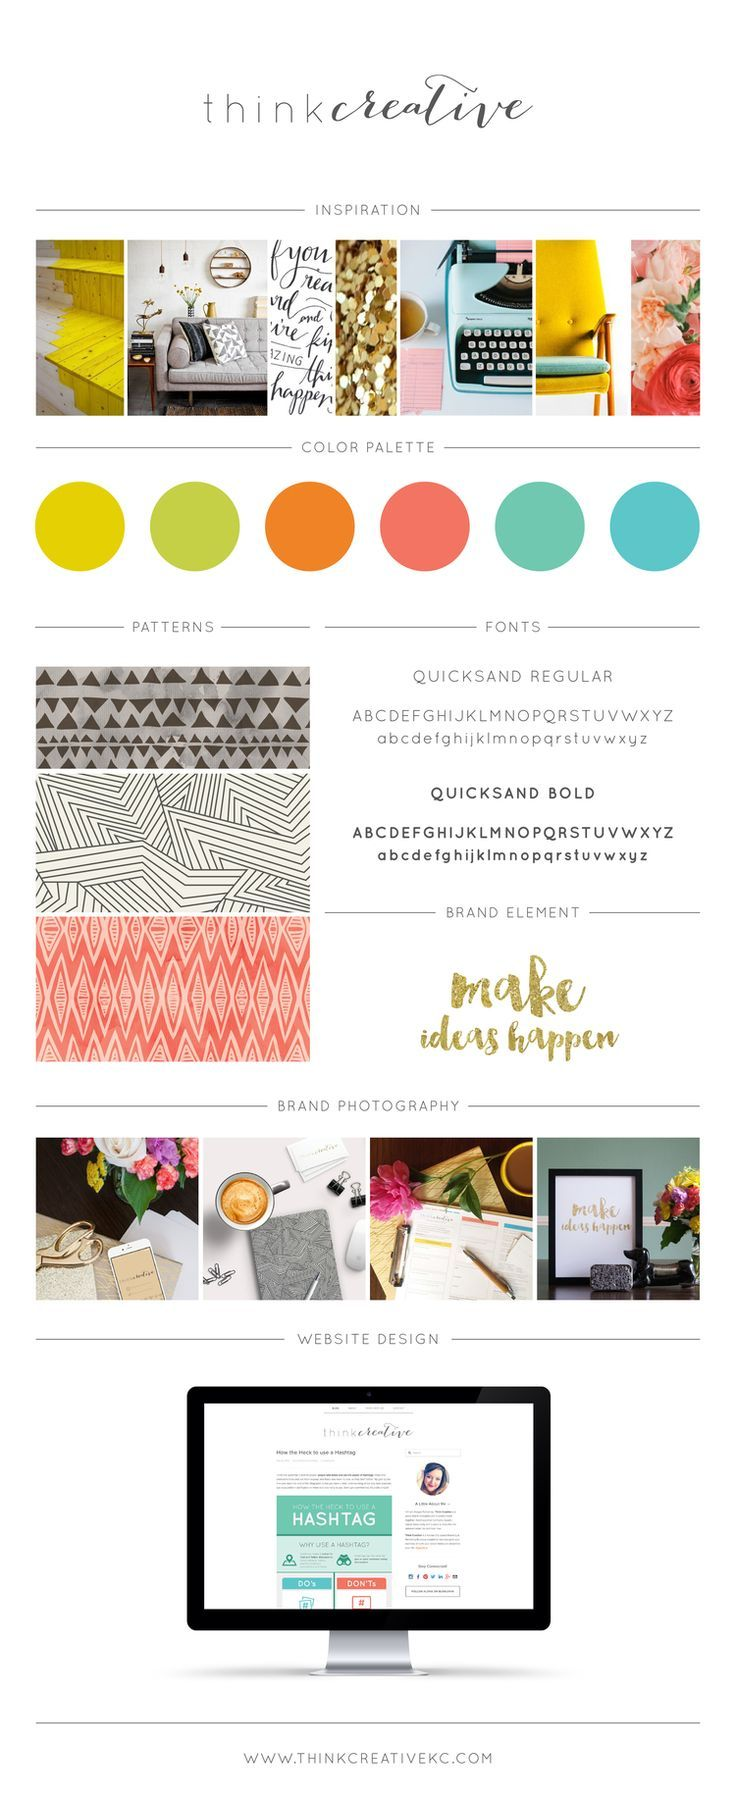 348 Best Images About Mood Board Inspiration On Pinterest: 35 Best Moodboard - Style Images On Pinterest